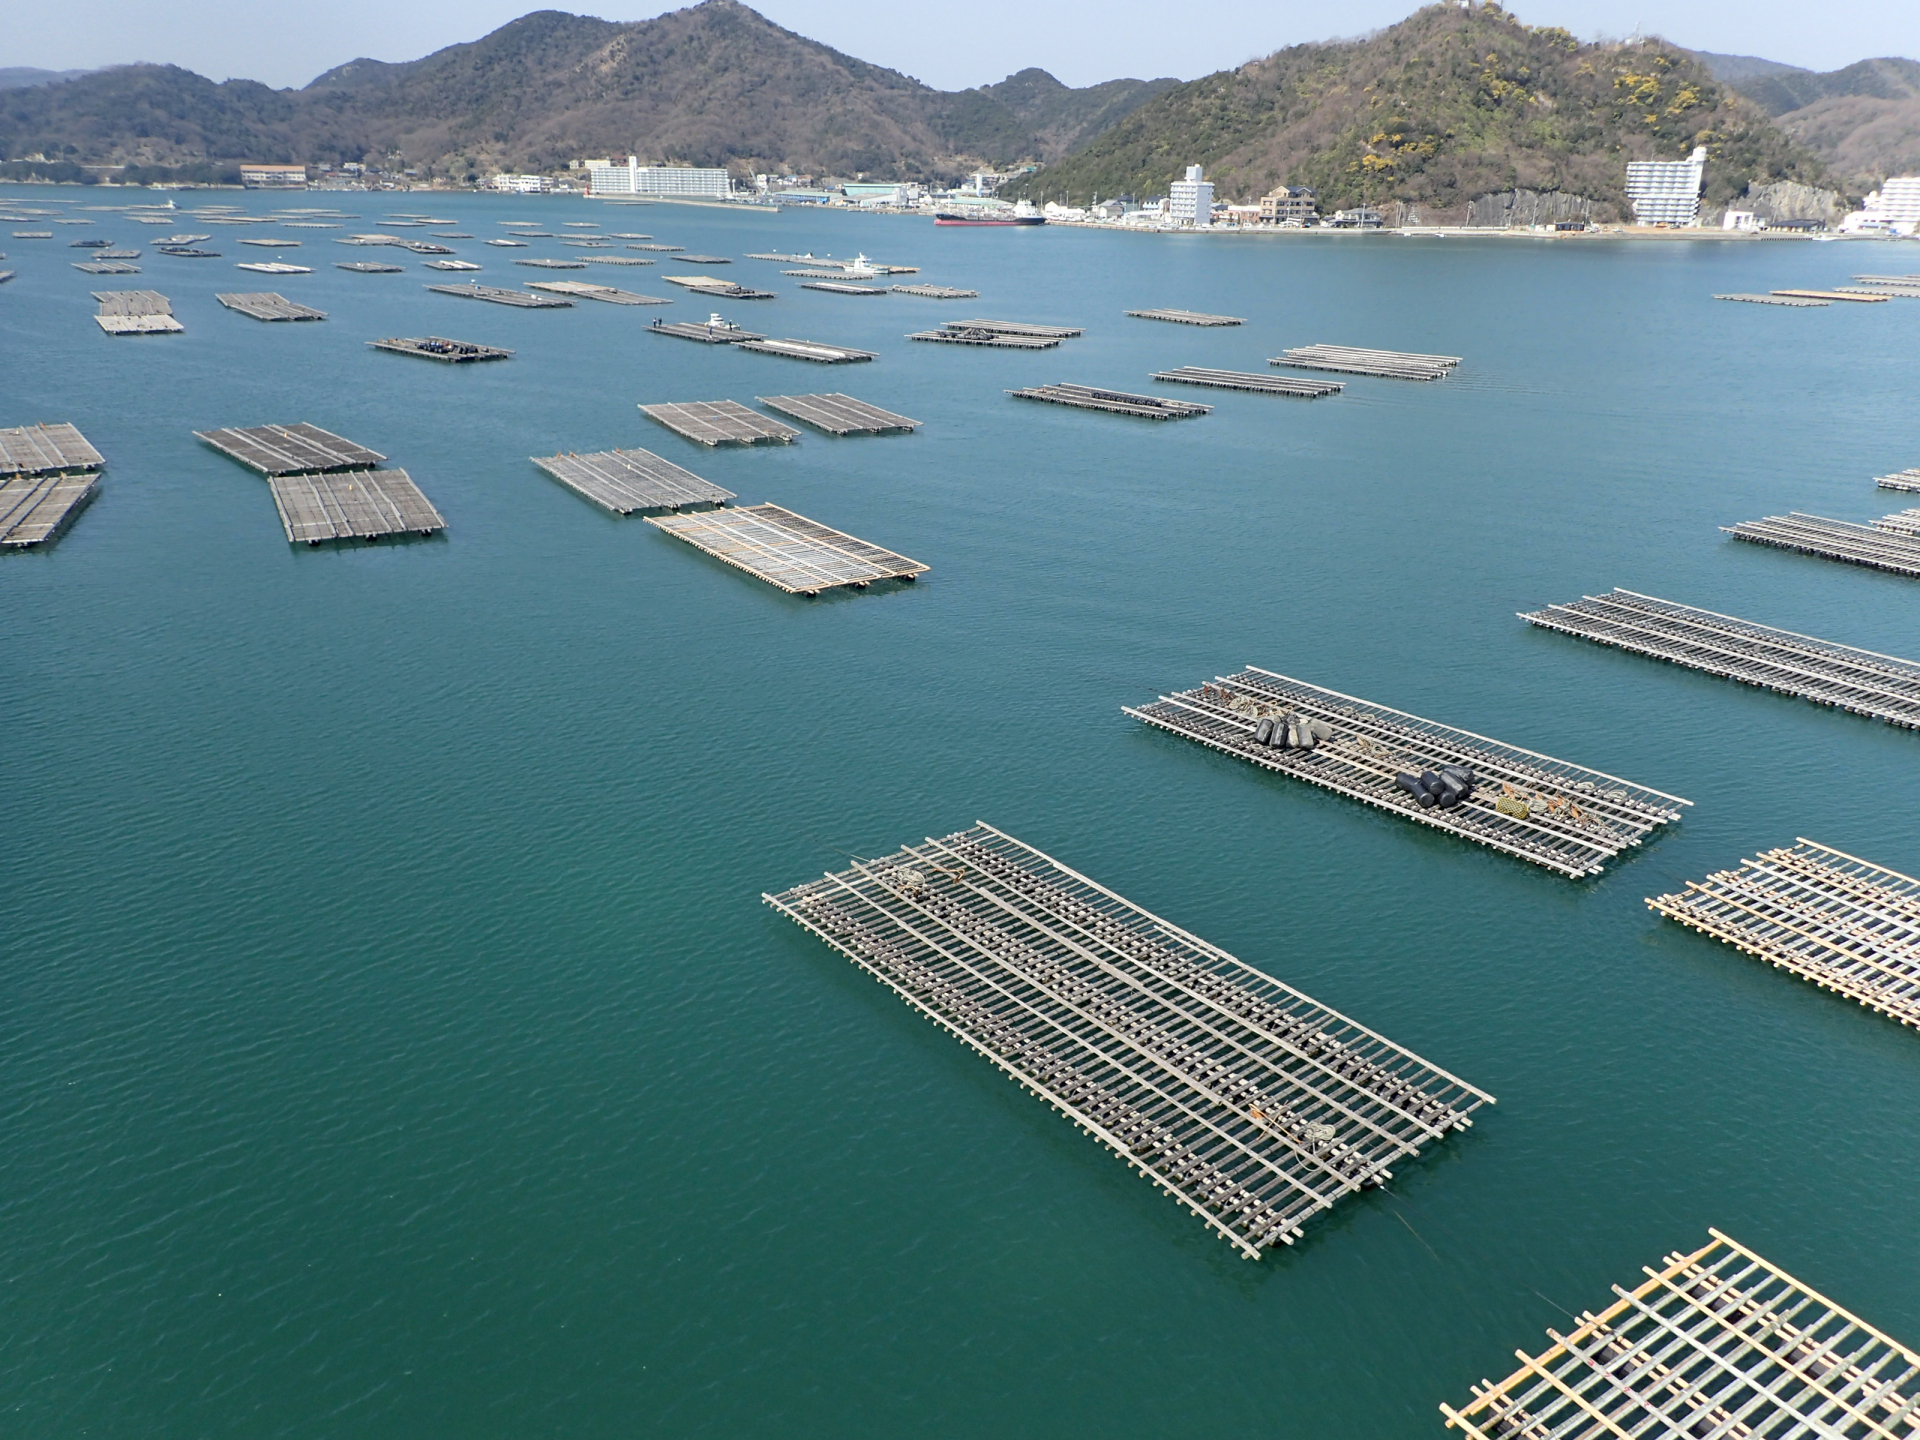 Oyster rafts in Hinasechō, Bizen City, Okayama Prefecture, where the blue economy is revitalizing the region